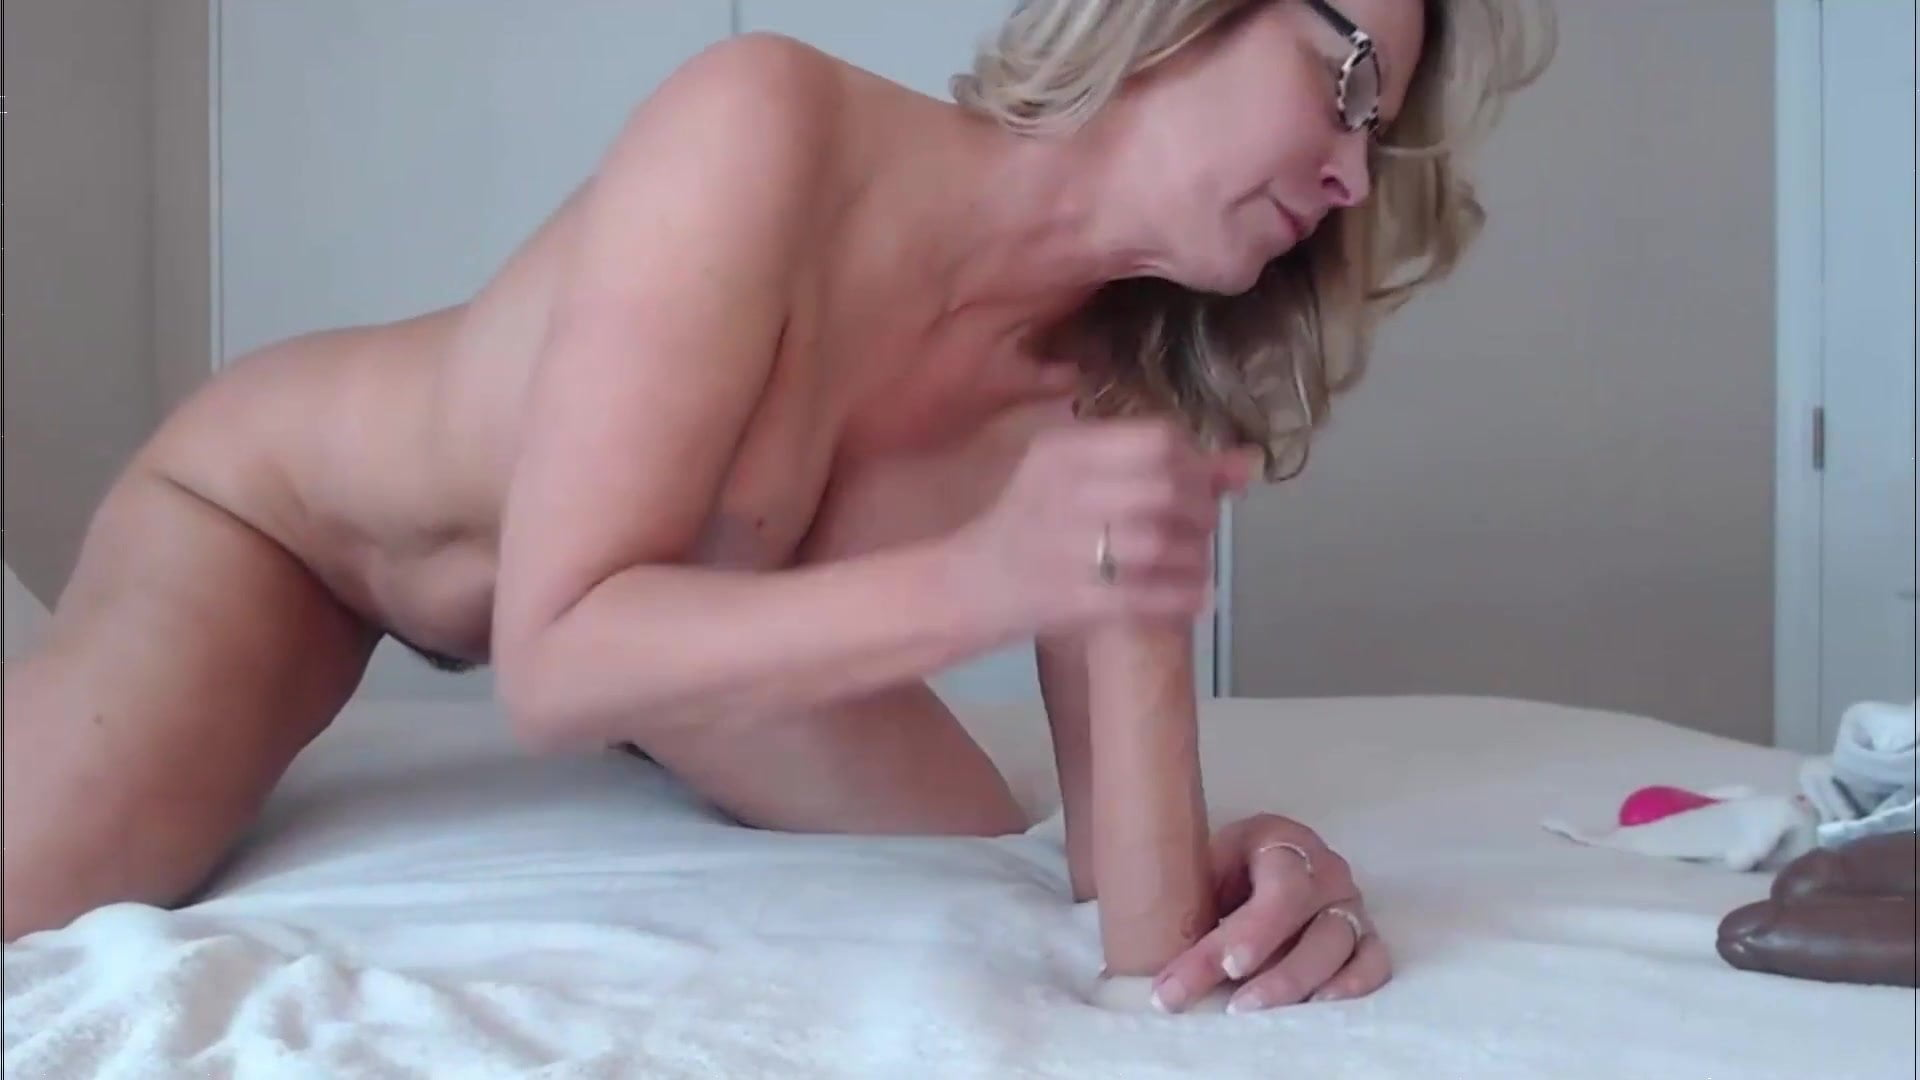 how-to-anal-play-blowjob-daughter-dating-bisexual-male